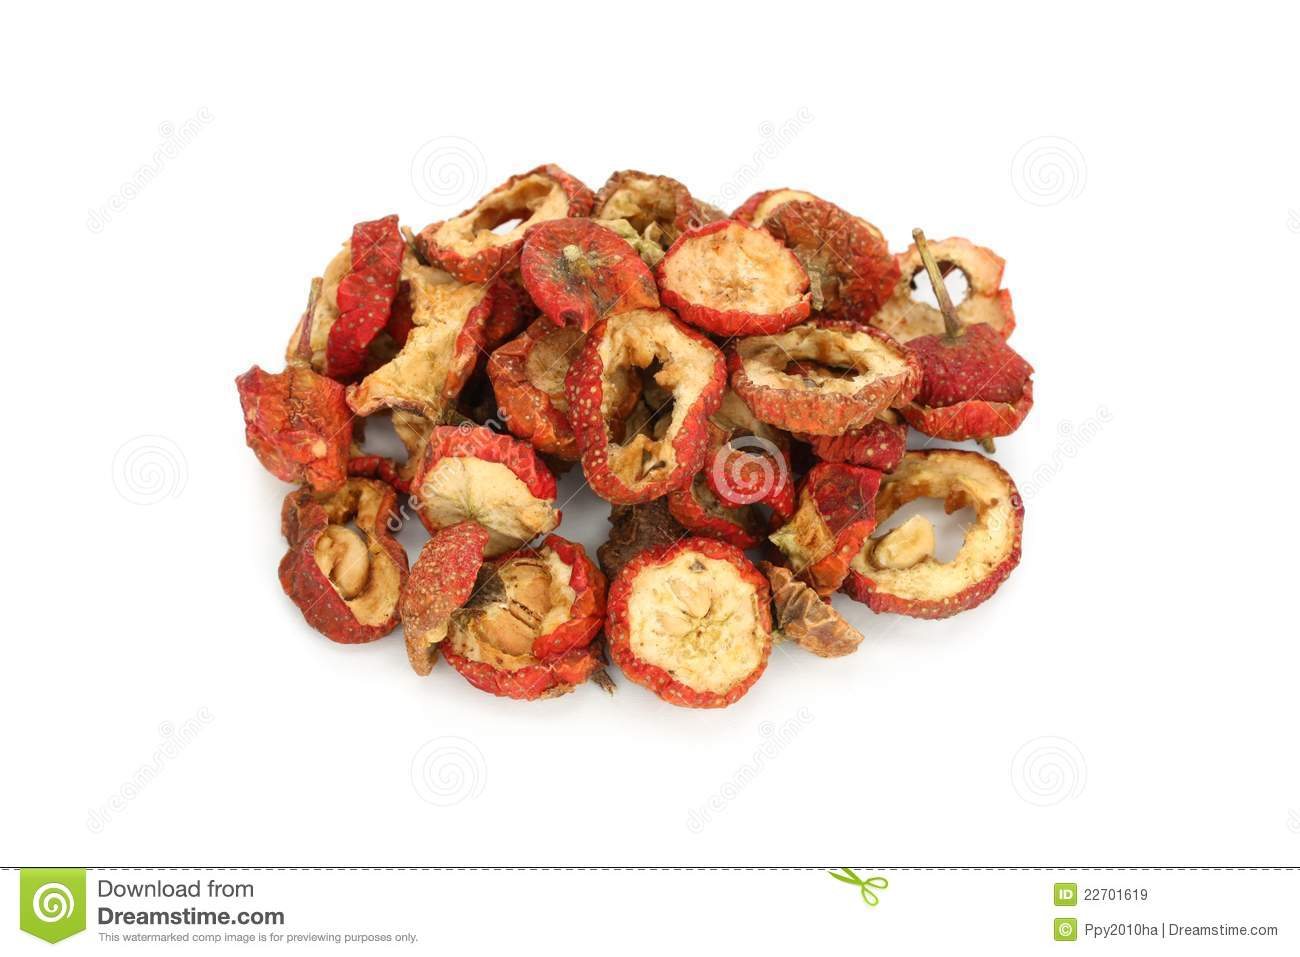 Dried chinese hawthorn fruits, traditional chinese